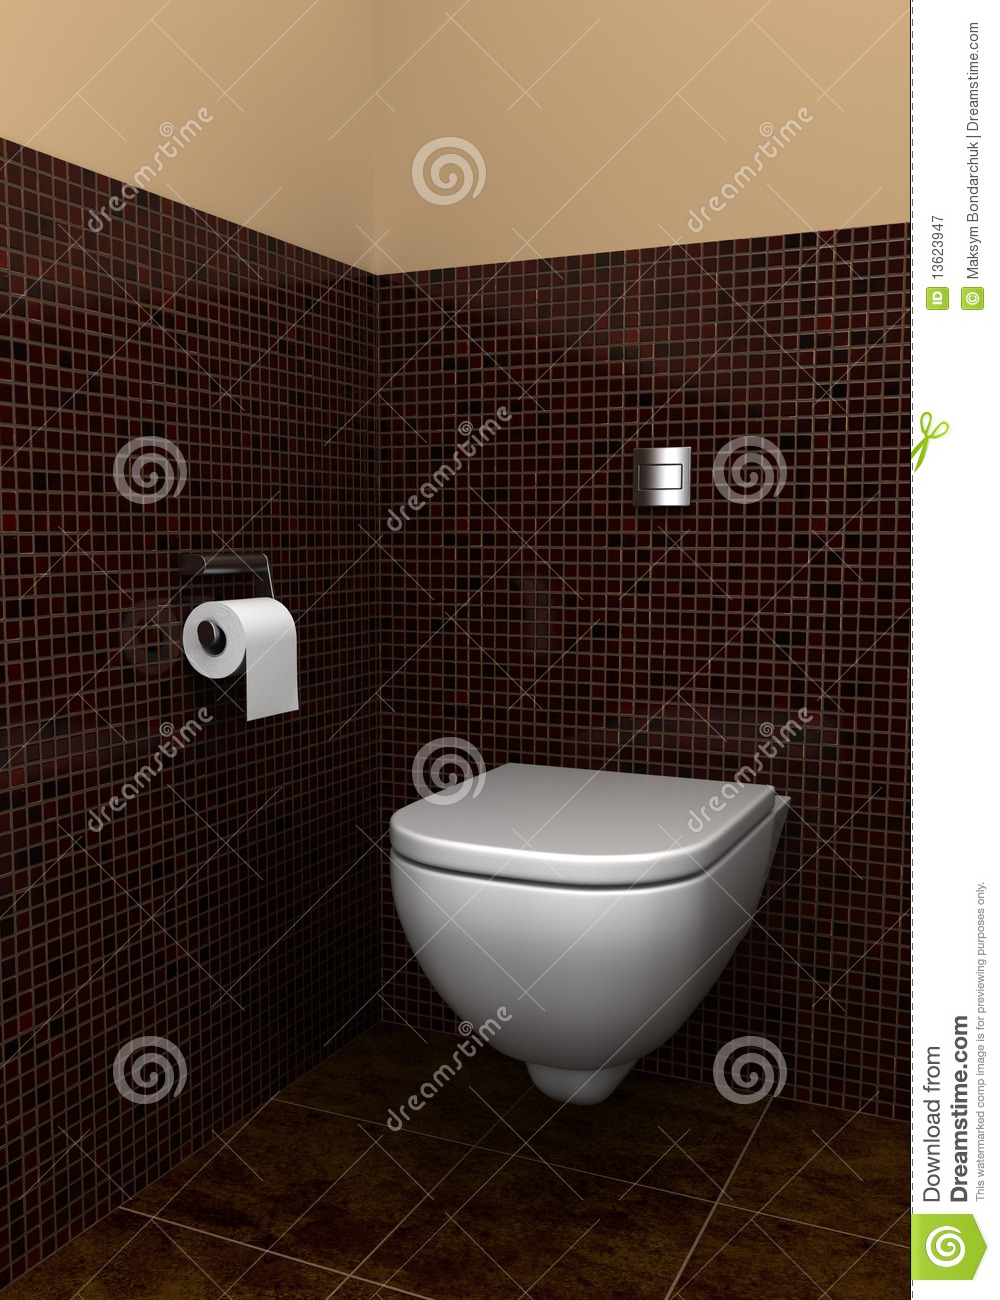 Toilette moderne avec les tuiles brunes sur le mur for Photo toilette moderne